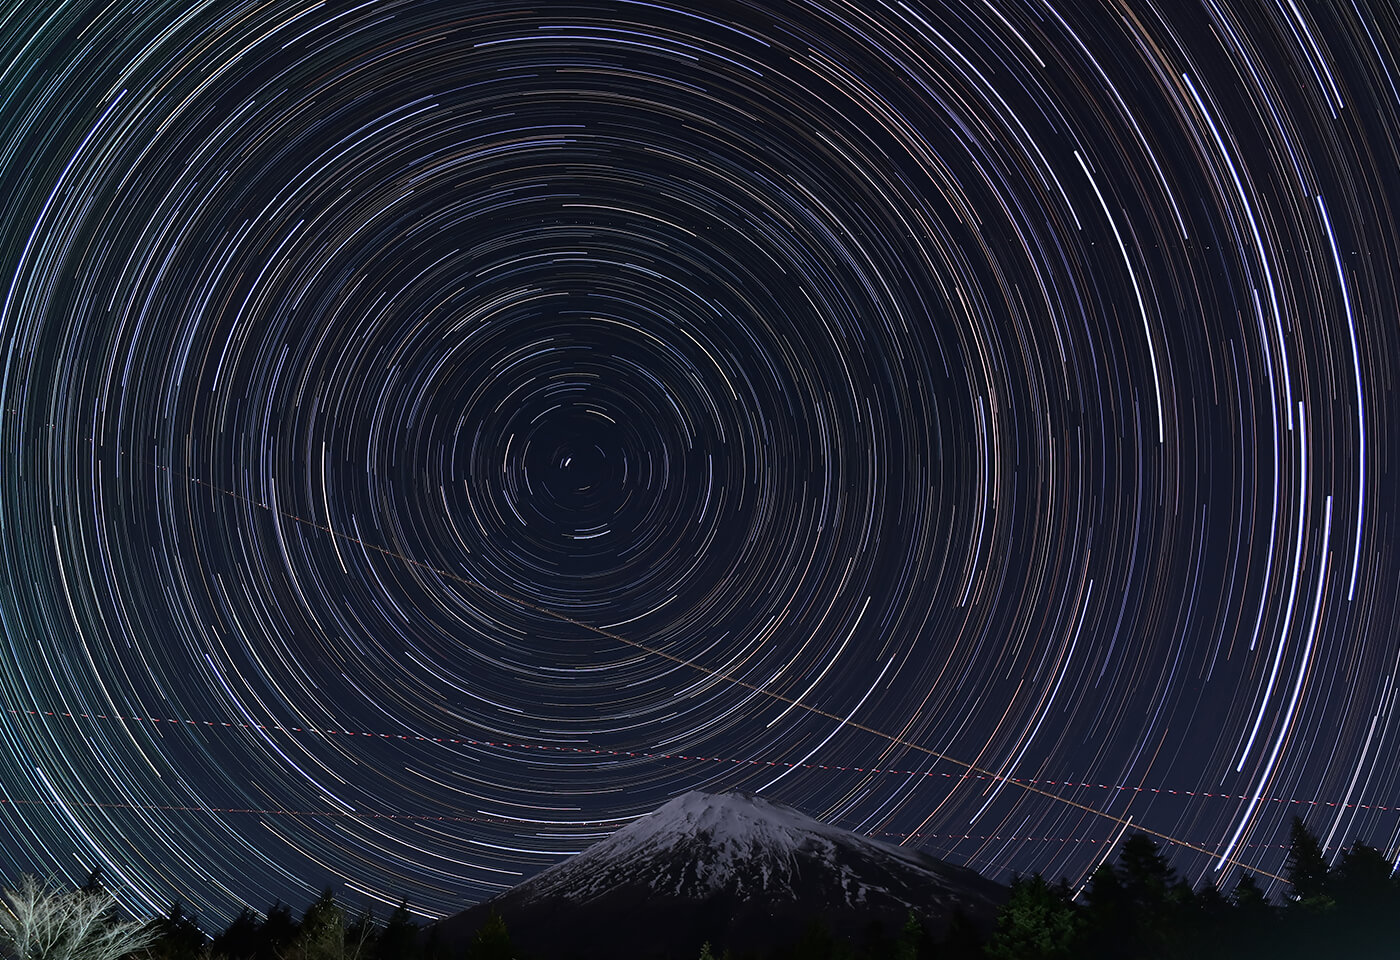 Night image of star trails